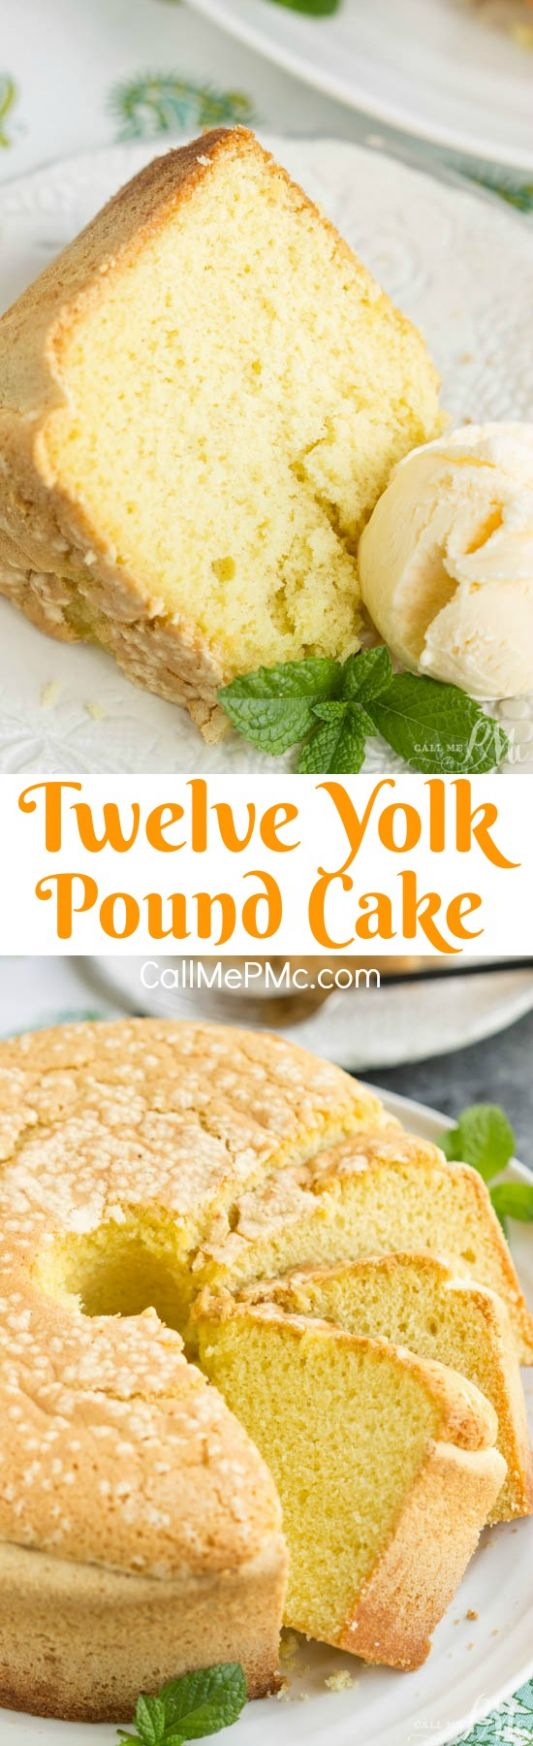 Twelve Yolk Pound Cake - Recipes With Egg Yolks